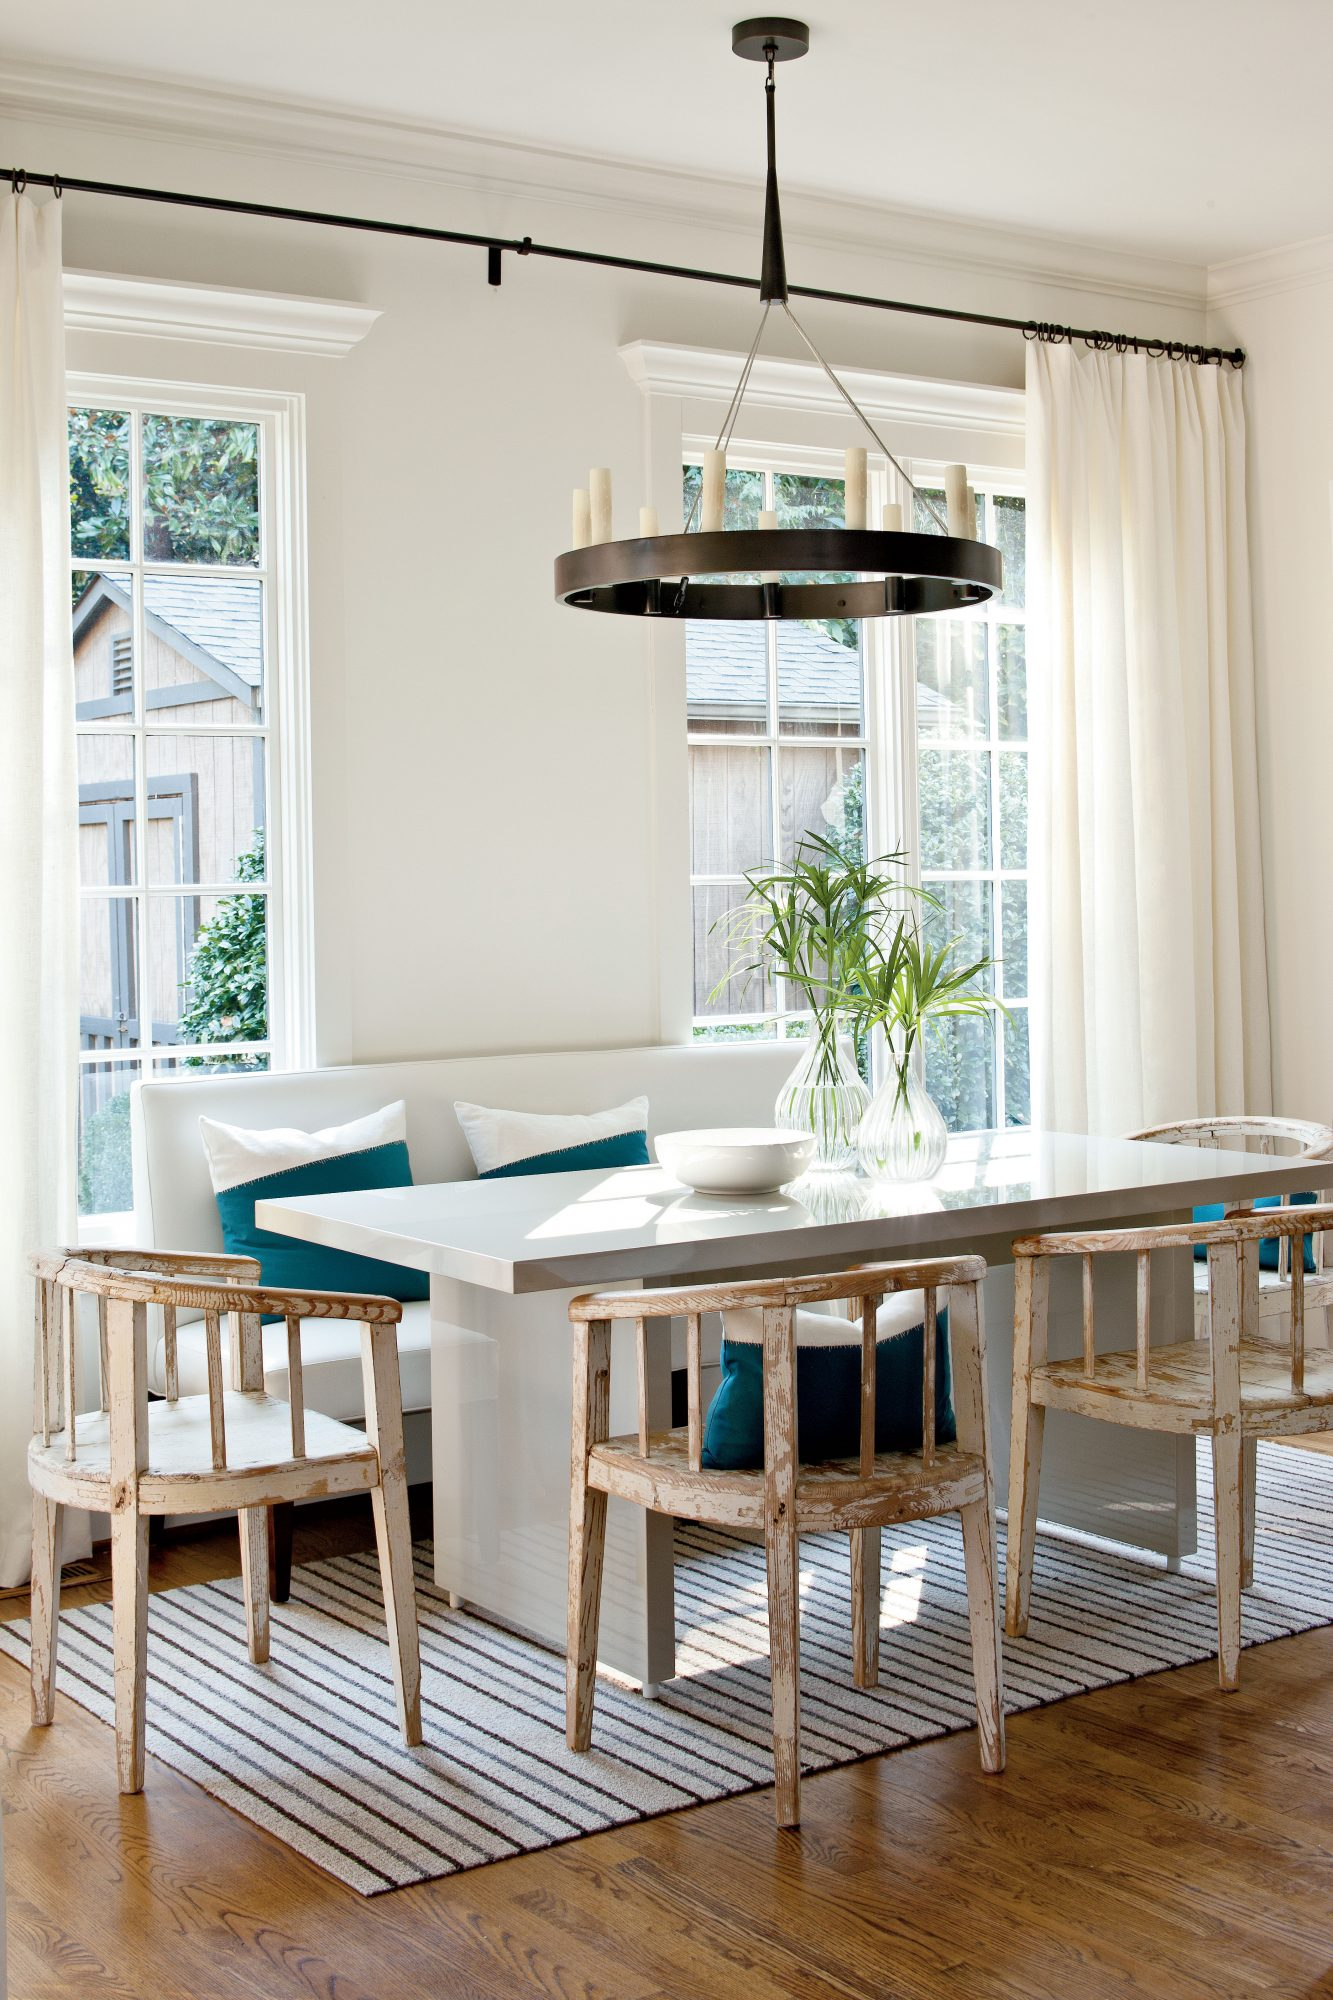 The Best White Paint Colors  Lindsey Bond Meadows Dining Room. The Best White Paint Colors   Southern Living